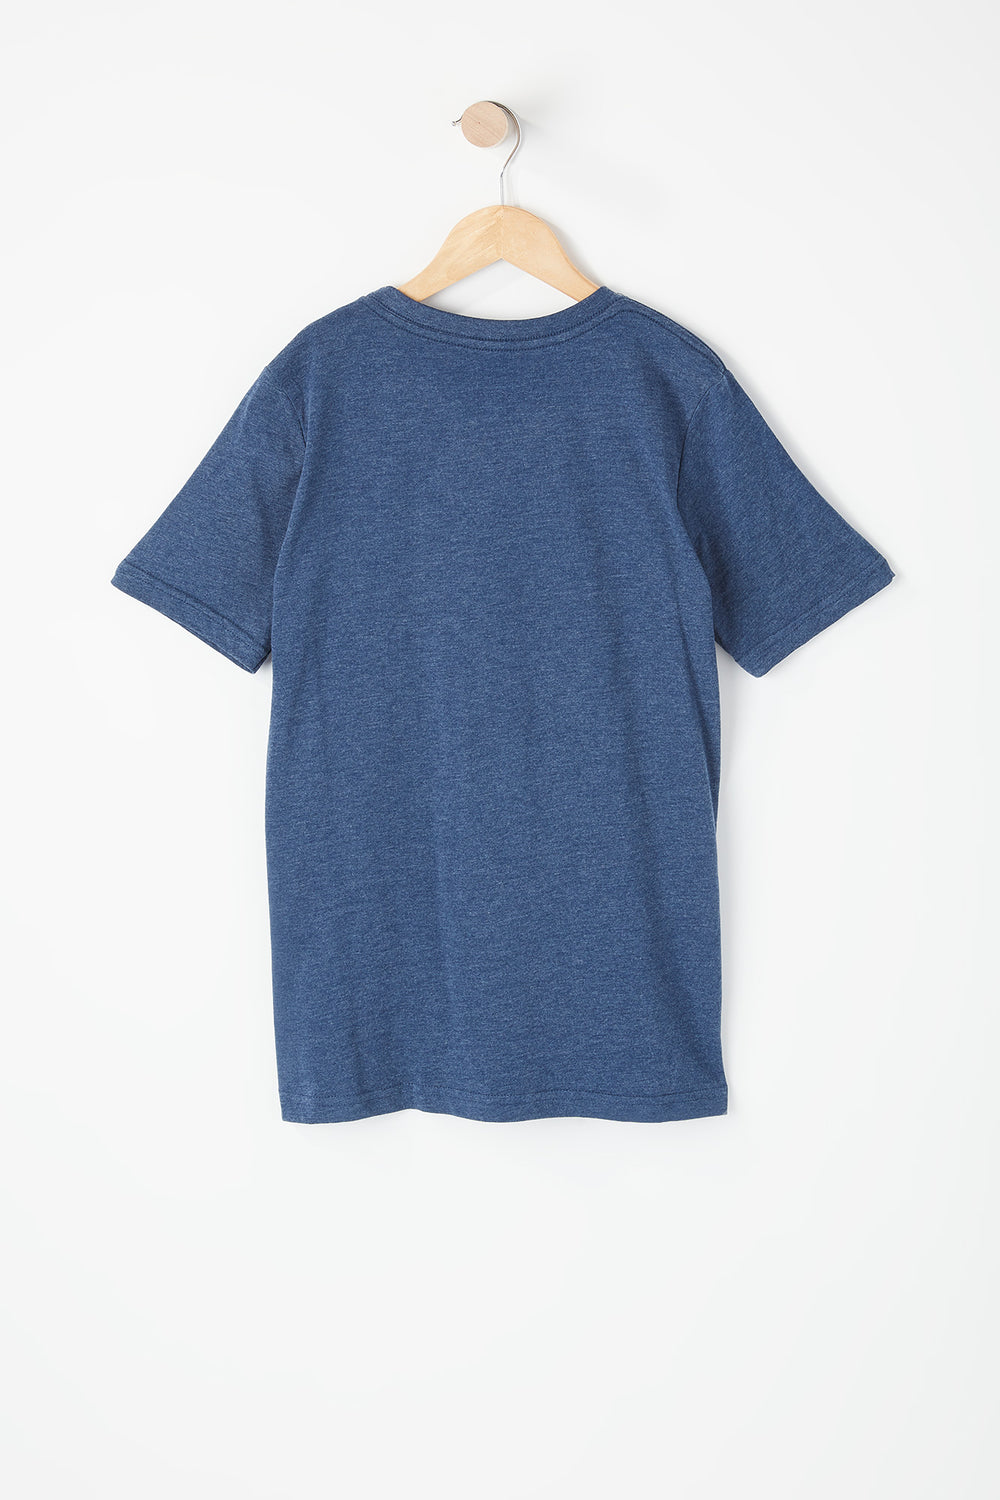 West49 Youth Head In the Clouds T-Shirt Denim Blue